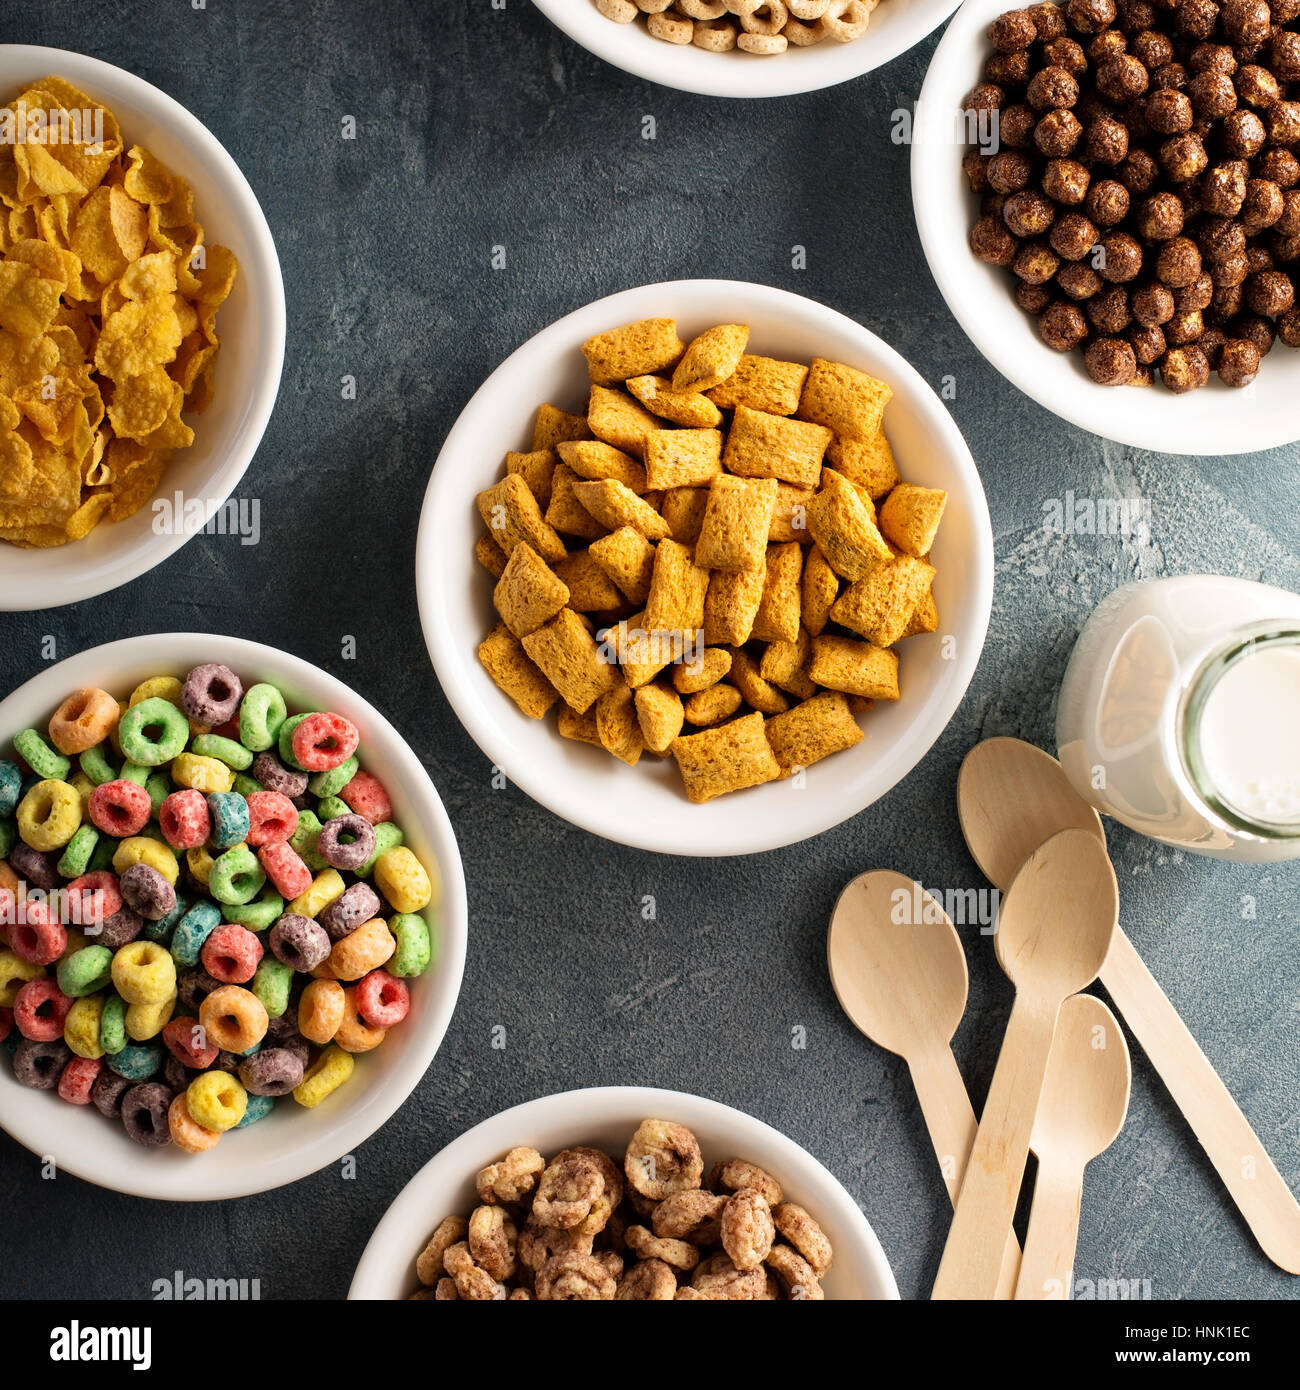 Fruit Loops Cereals Stock Photos & Fruit Loops Cereals Stock Images